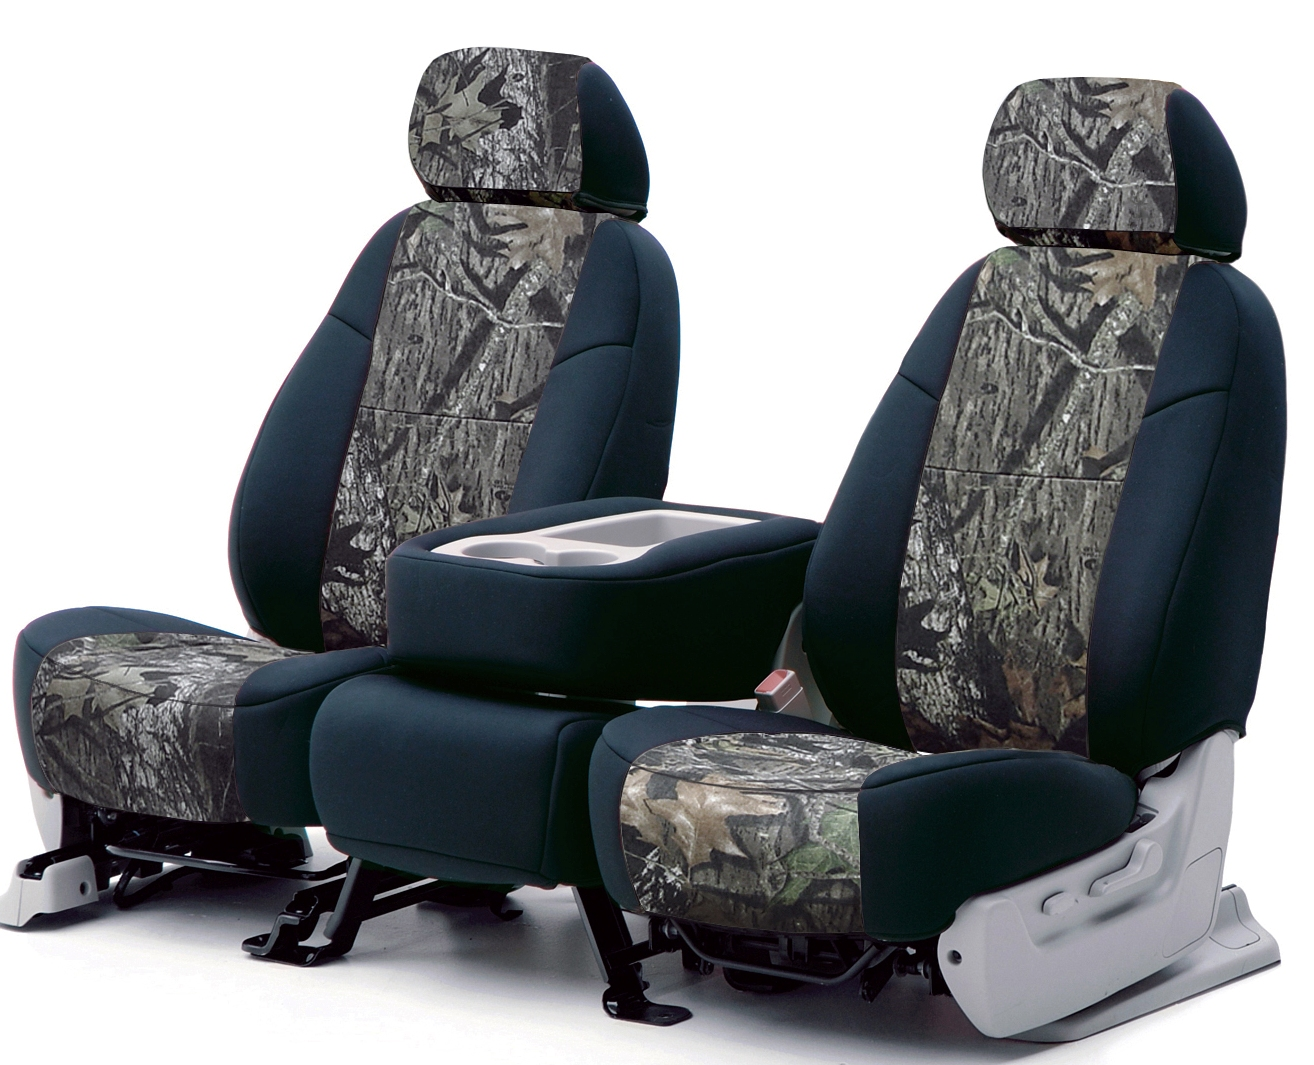 The Best Fitting Custom Seat Covers Available